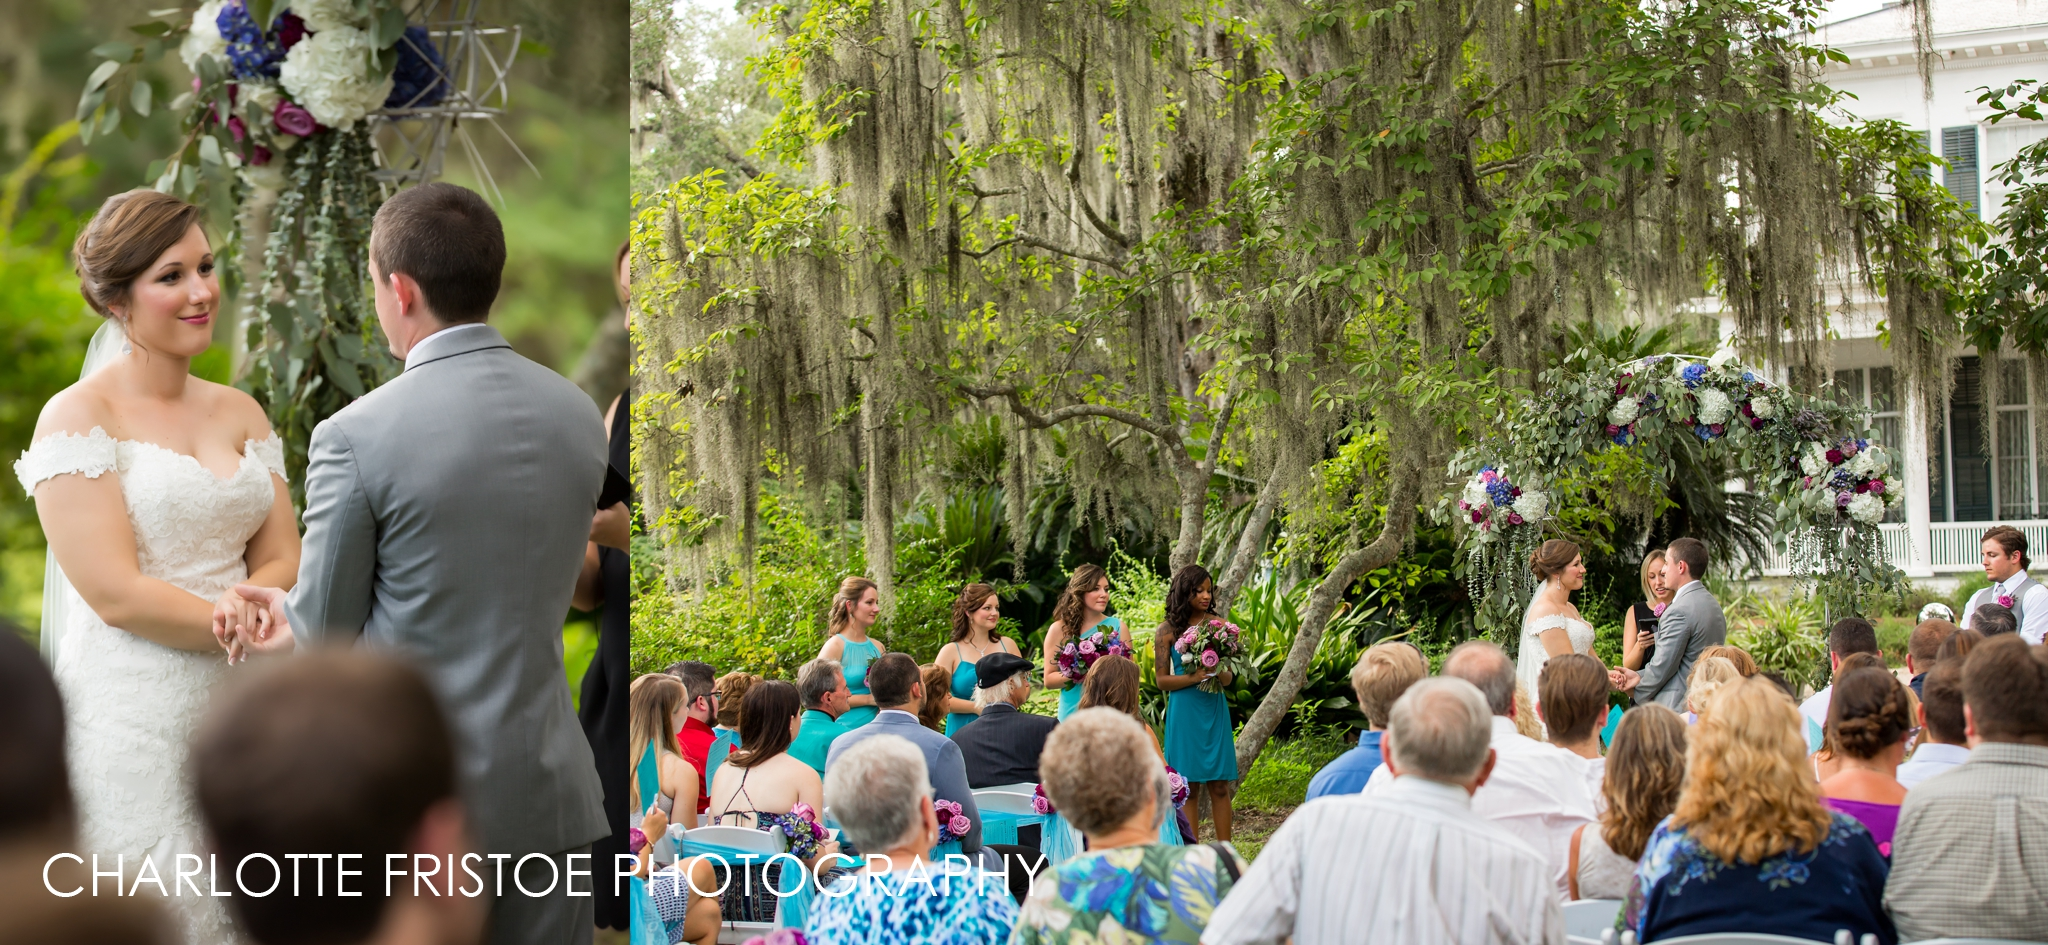 Tallahassee Wedding Photographer_0271.jpg